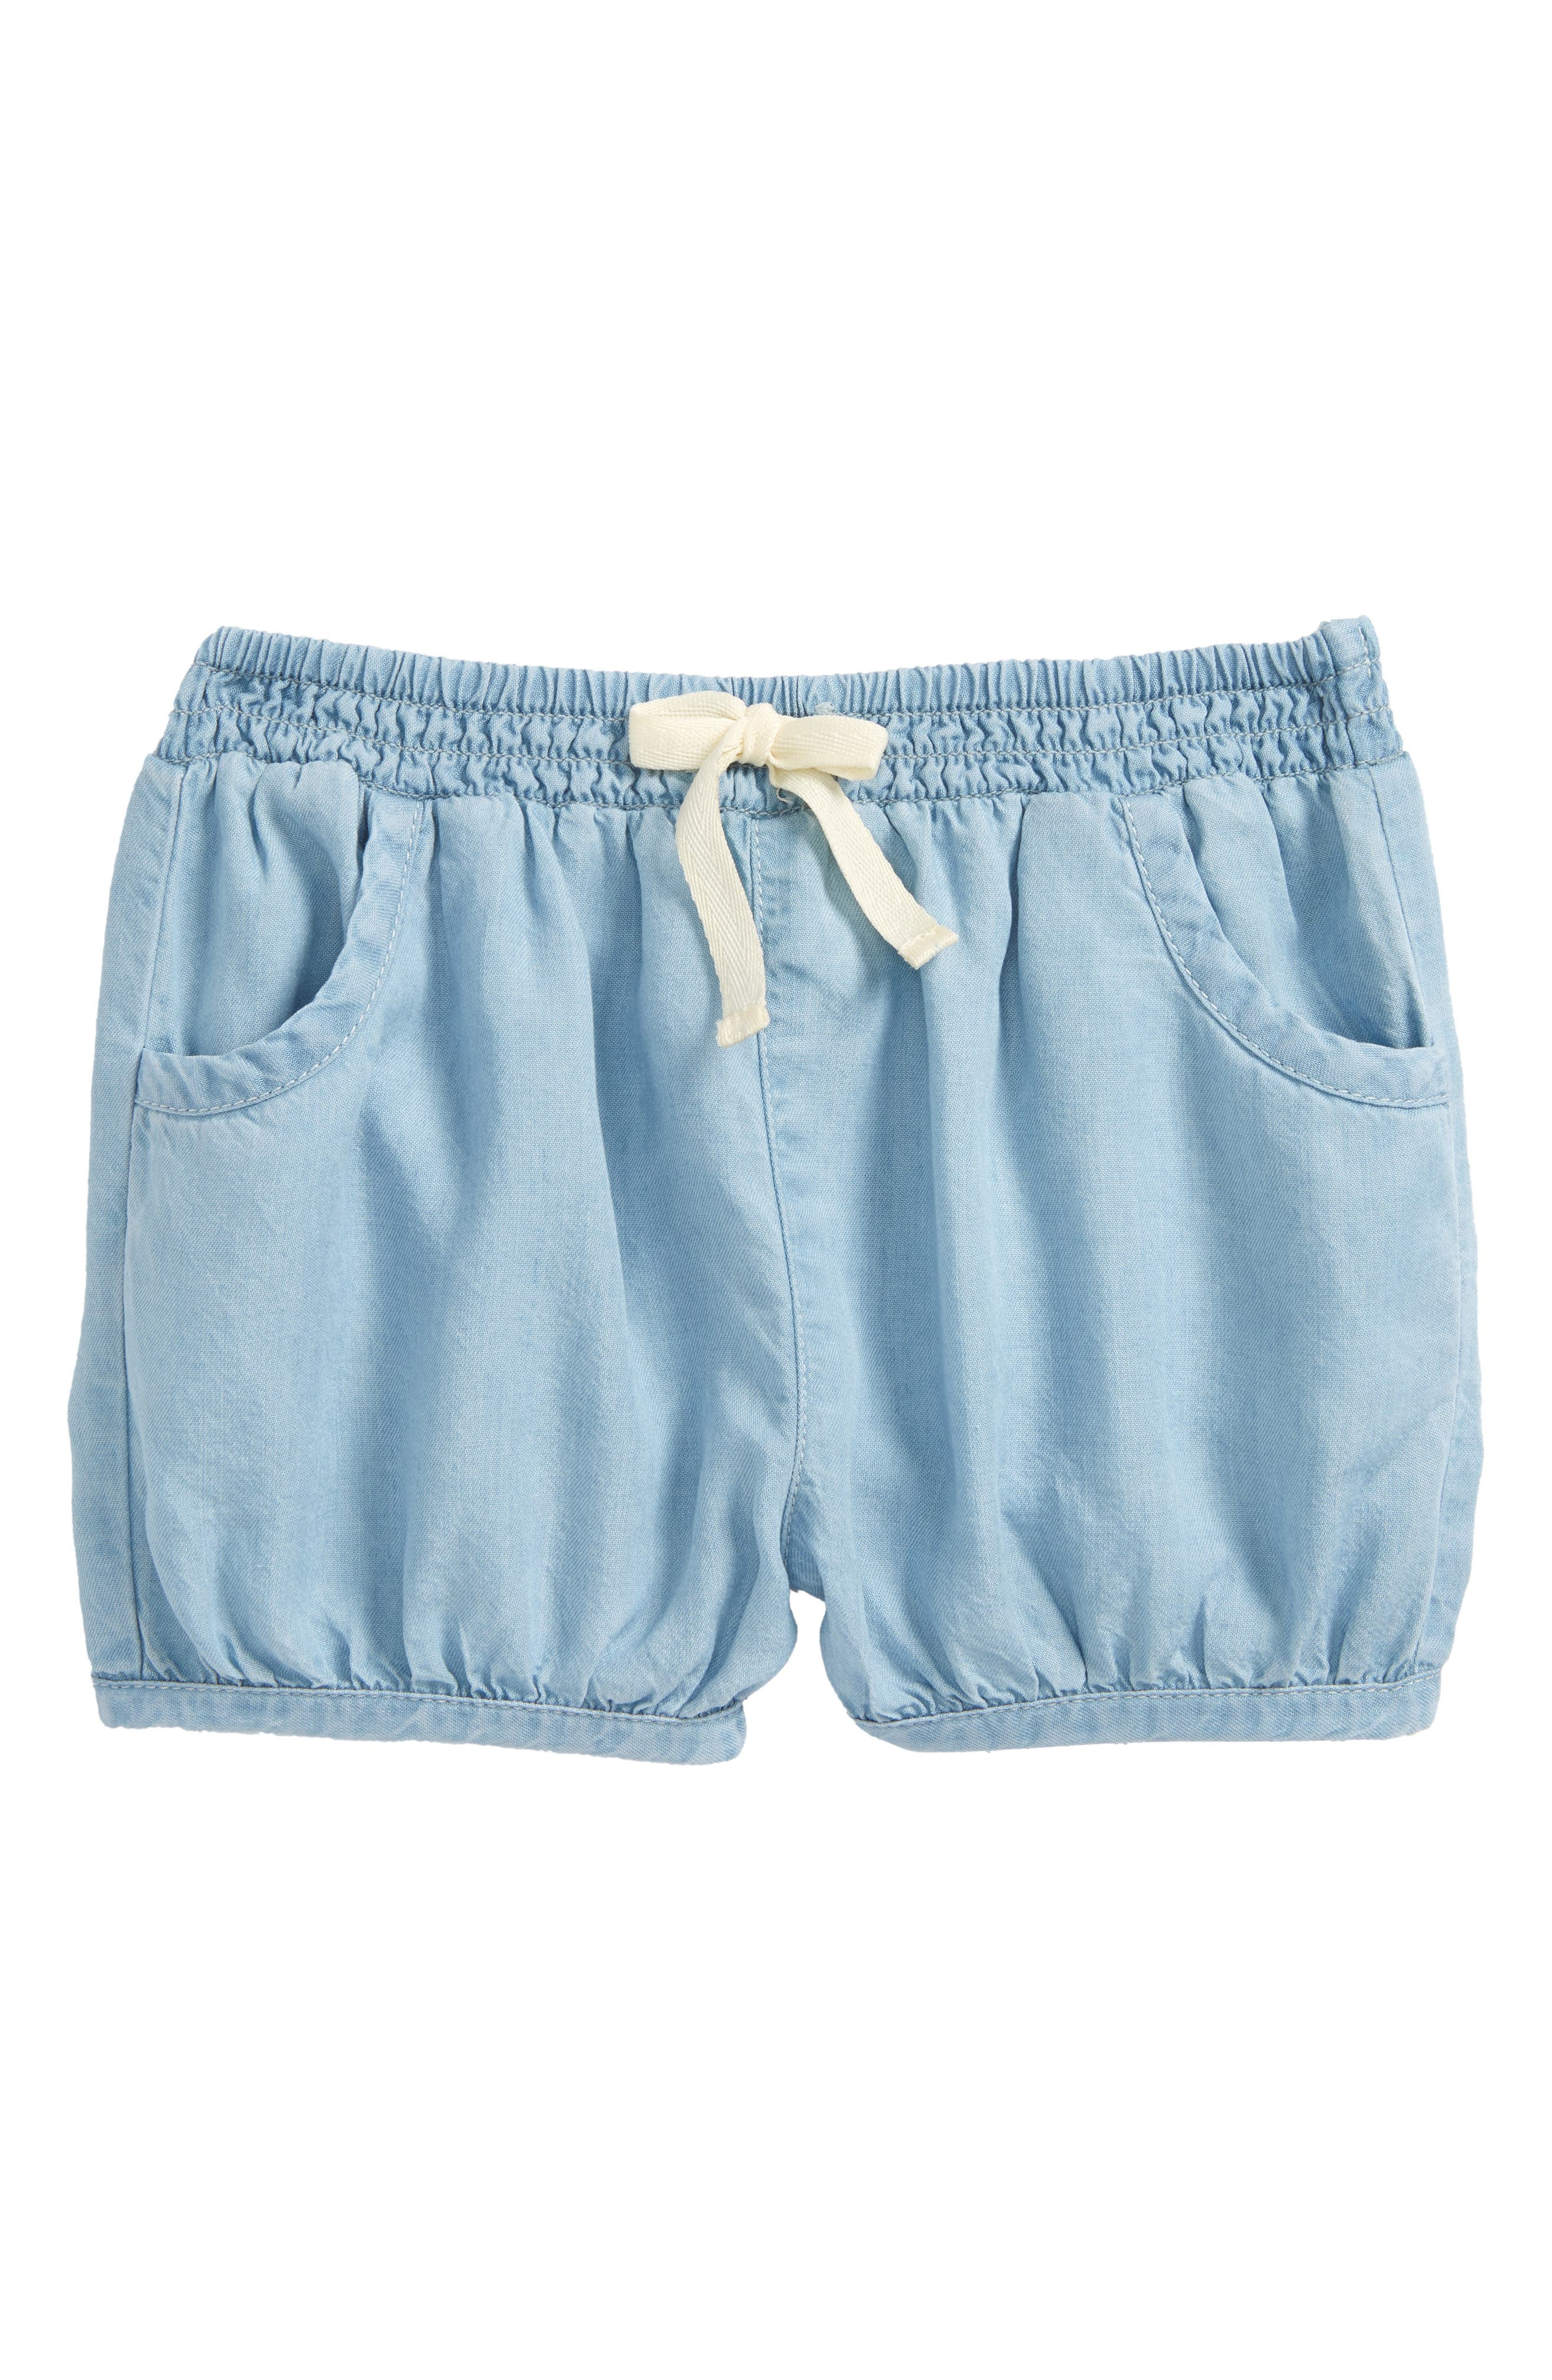 Essential Shorts,                         Main,                         color, Light Blue Wash